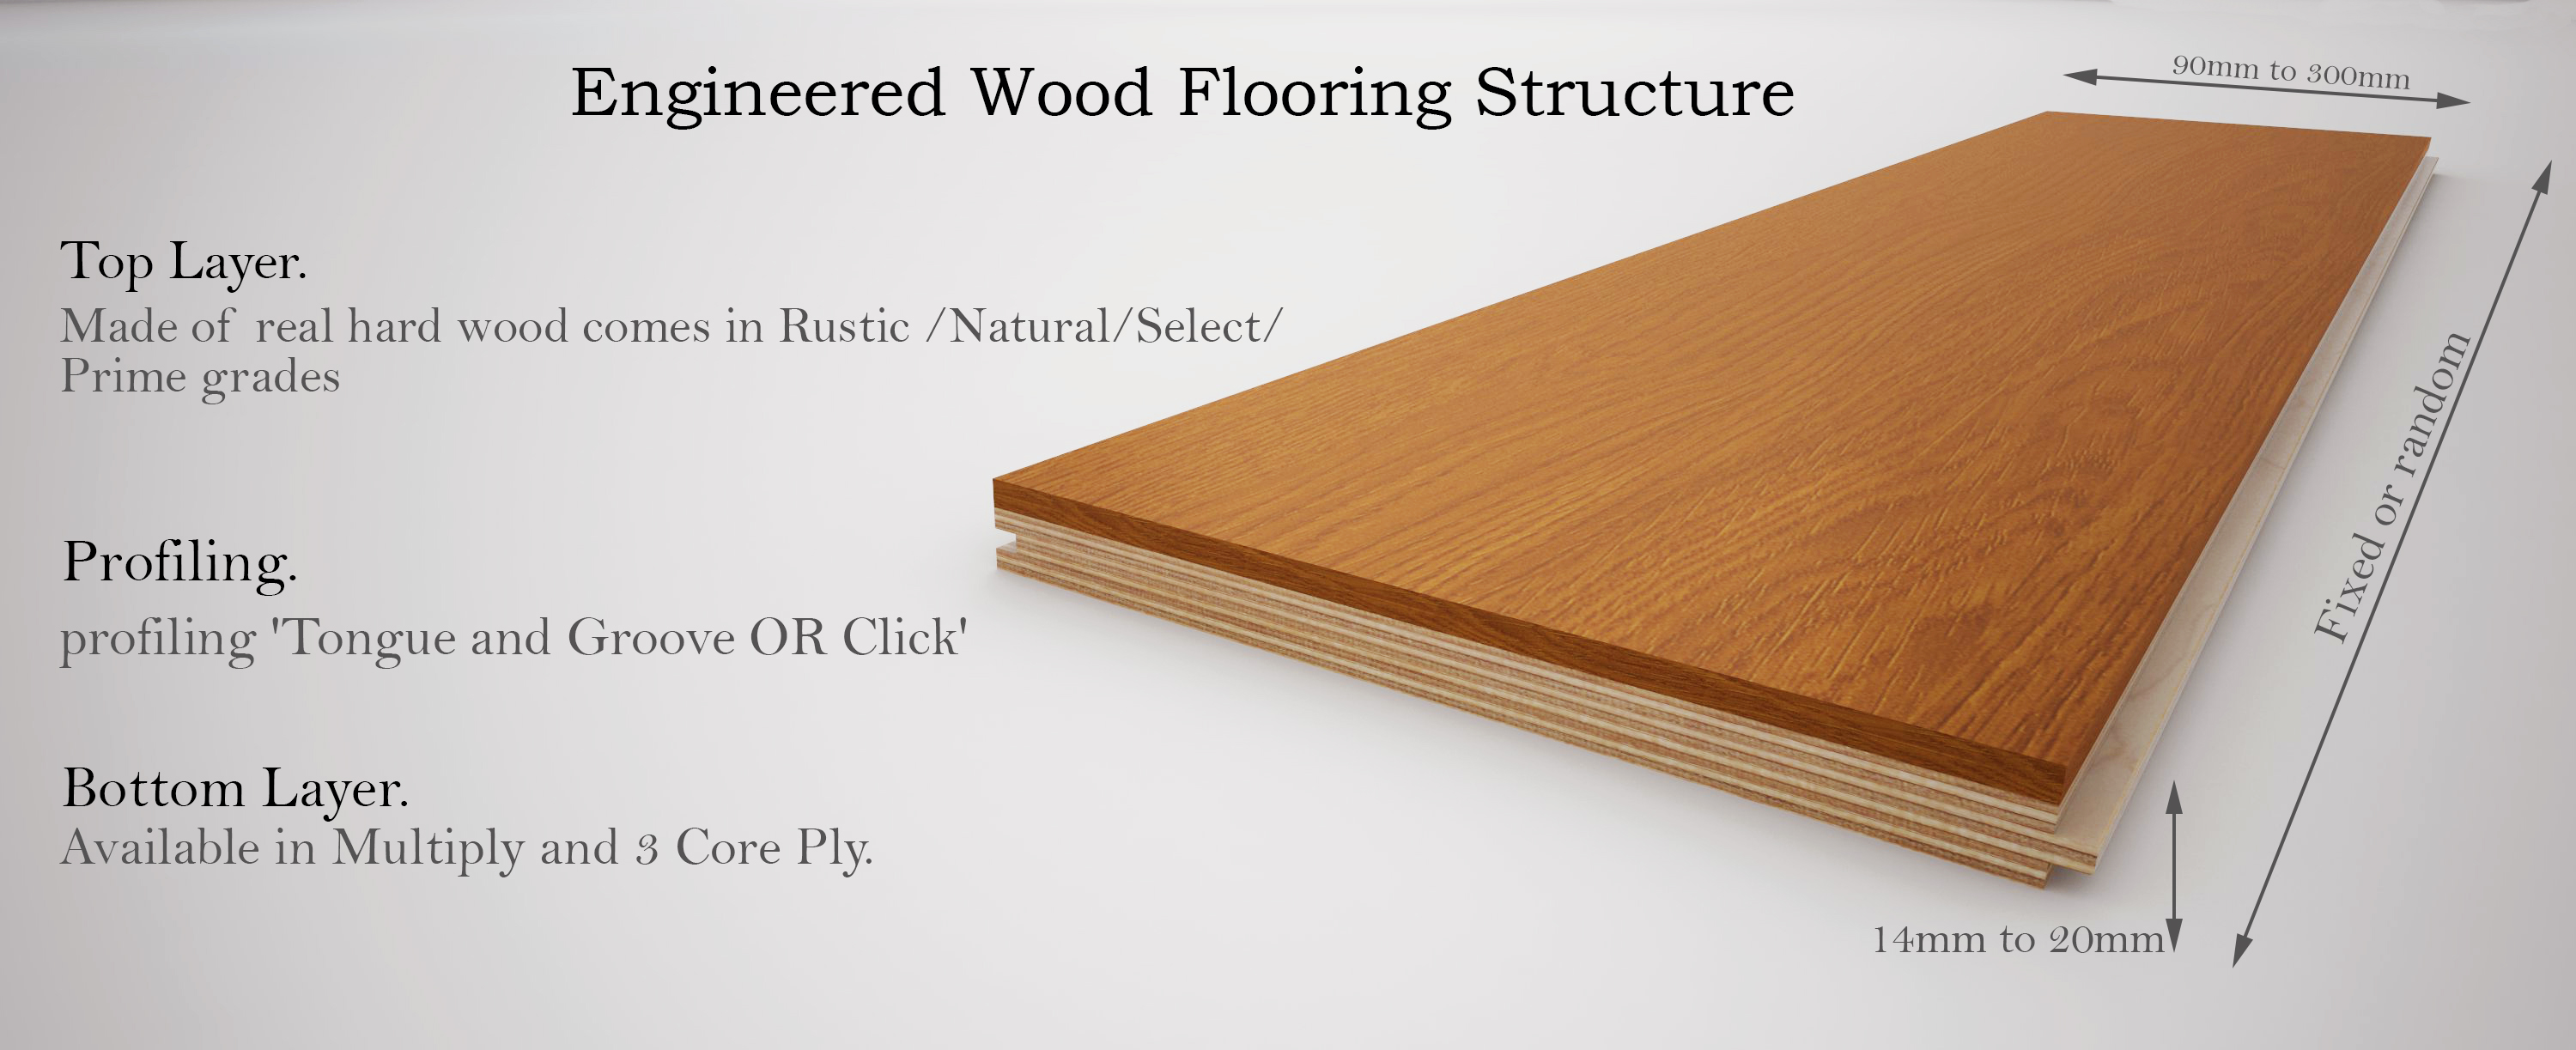 Parquet flooring sizes thefloors co for Engineered woods